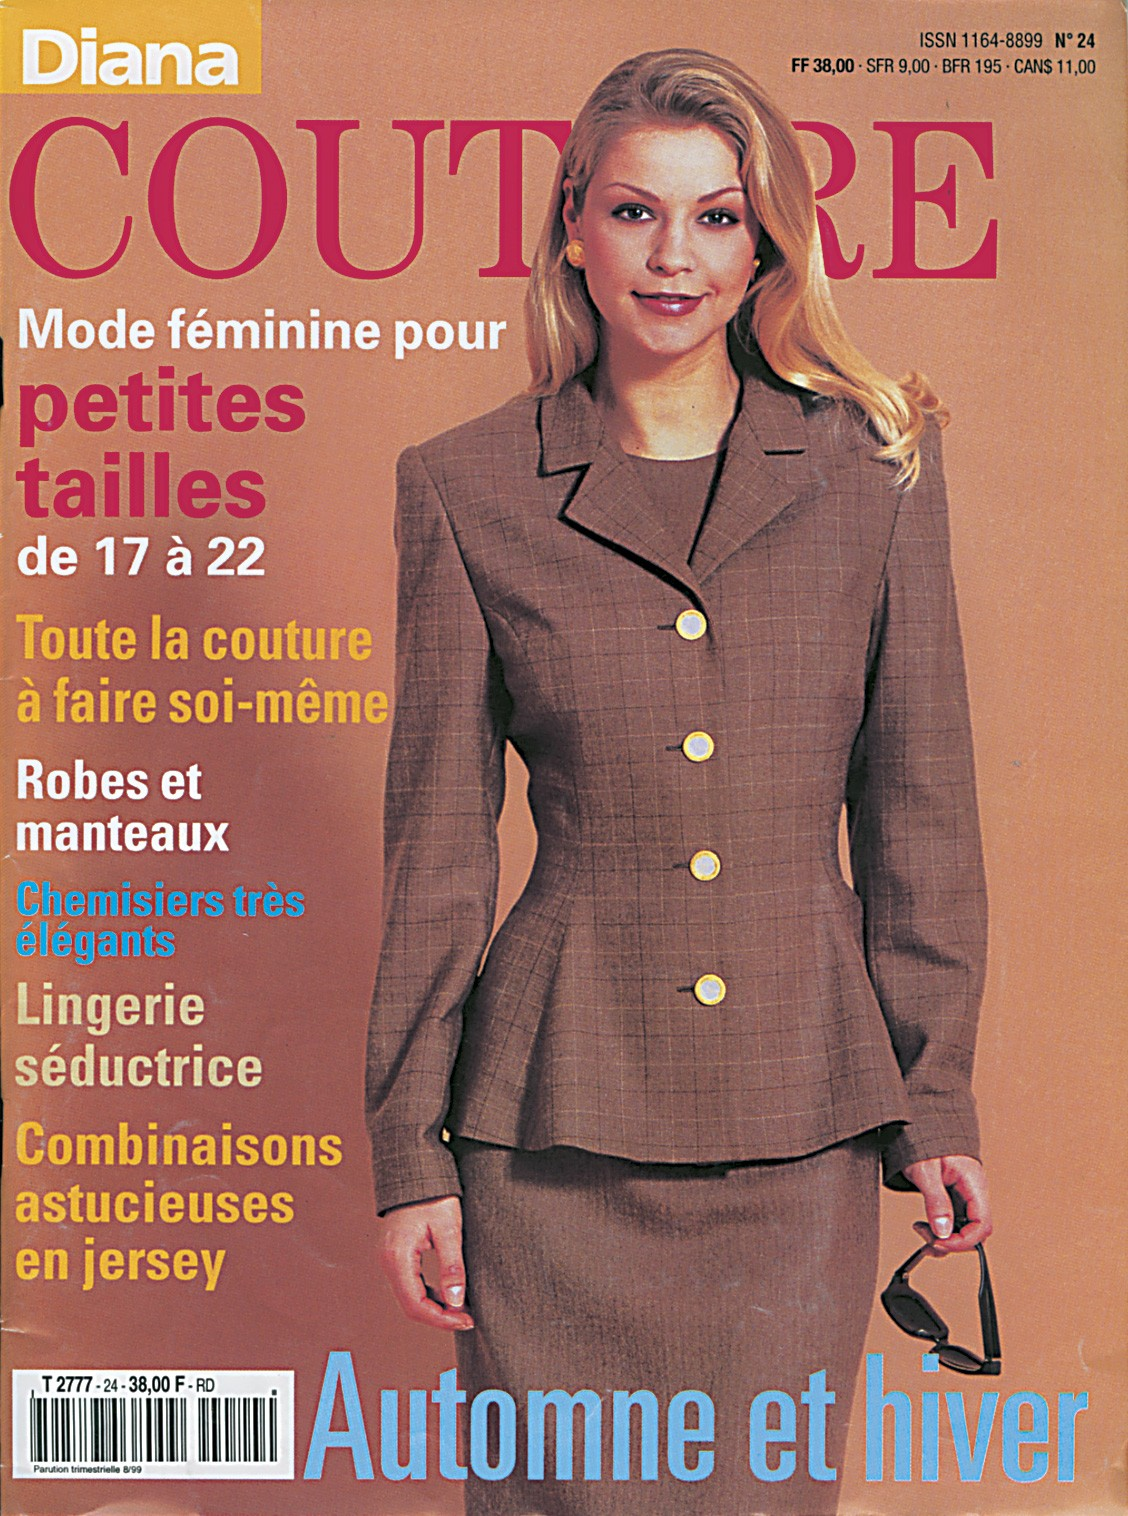 Diana Couture N°24 Automne et hiver